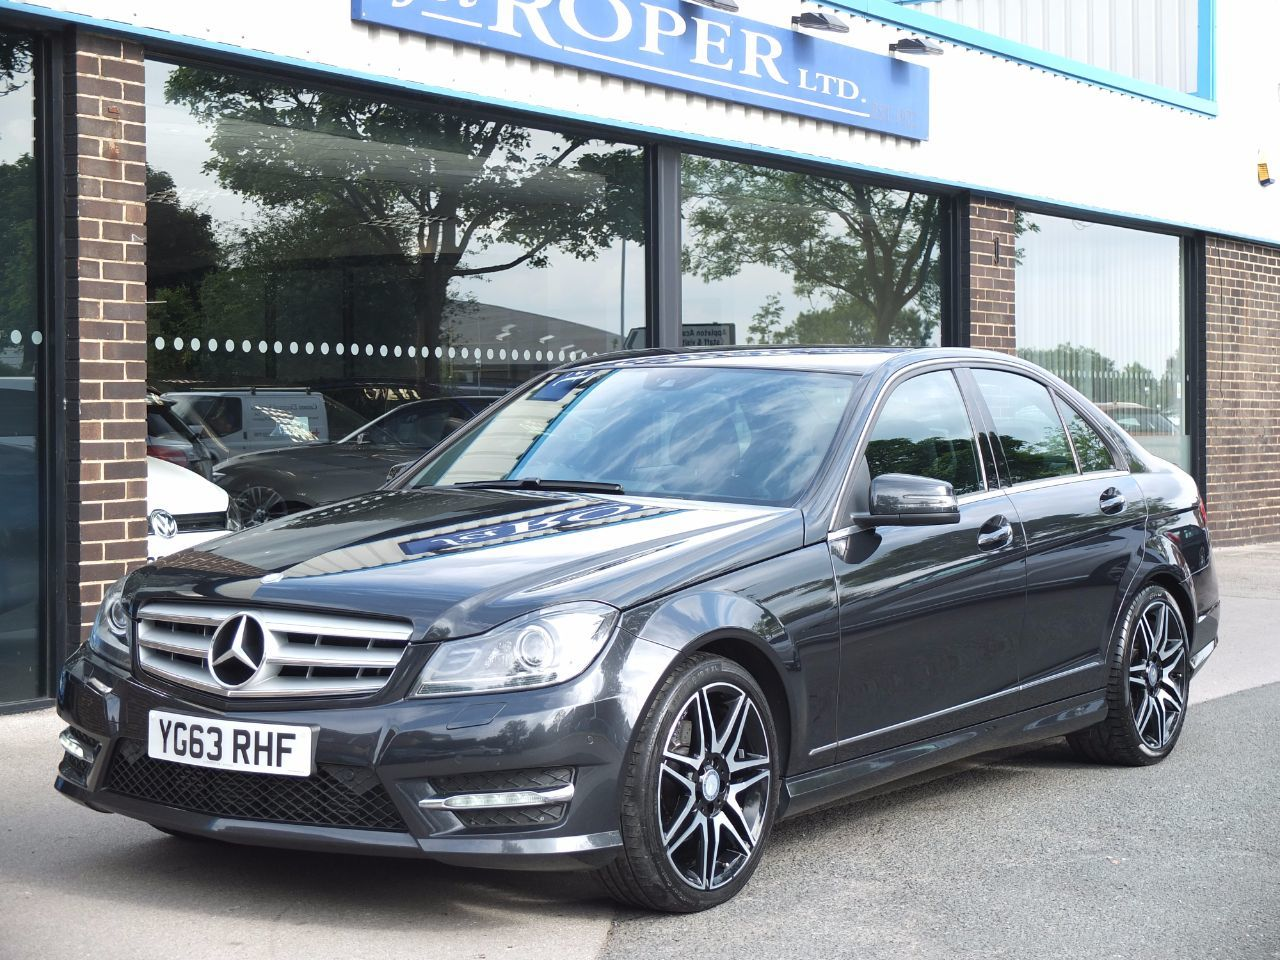 Mercedes-Benz C Class 2.1 C220 CDI BlueEFFICIENCY AMG Sport Plus 7G Tronic Auto +++Spec Saloon Diesel Magnetite Black MetallicMercedes-Benz C Class 2.1 C220 CDI BlueEFFICIENCY AMG Sport Plus 7G Tronic Auto +++Spec Saloon Diesel Magnetite Black Metallic at fa Roper Ltd Bradford